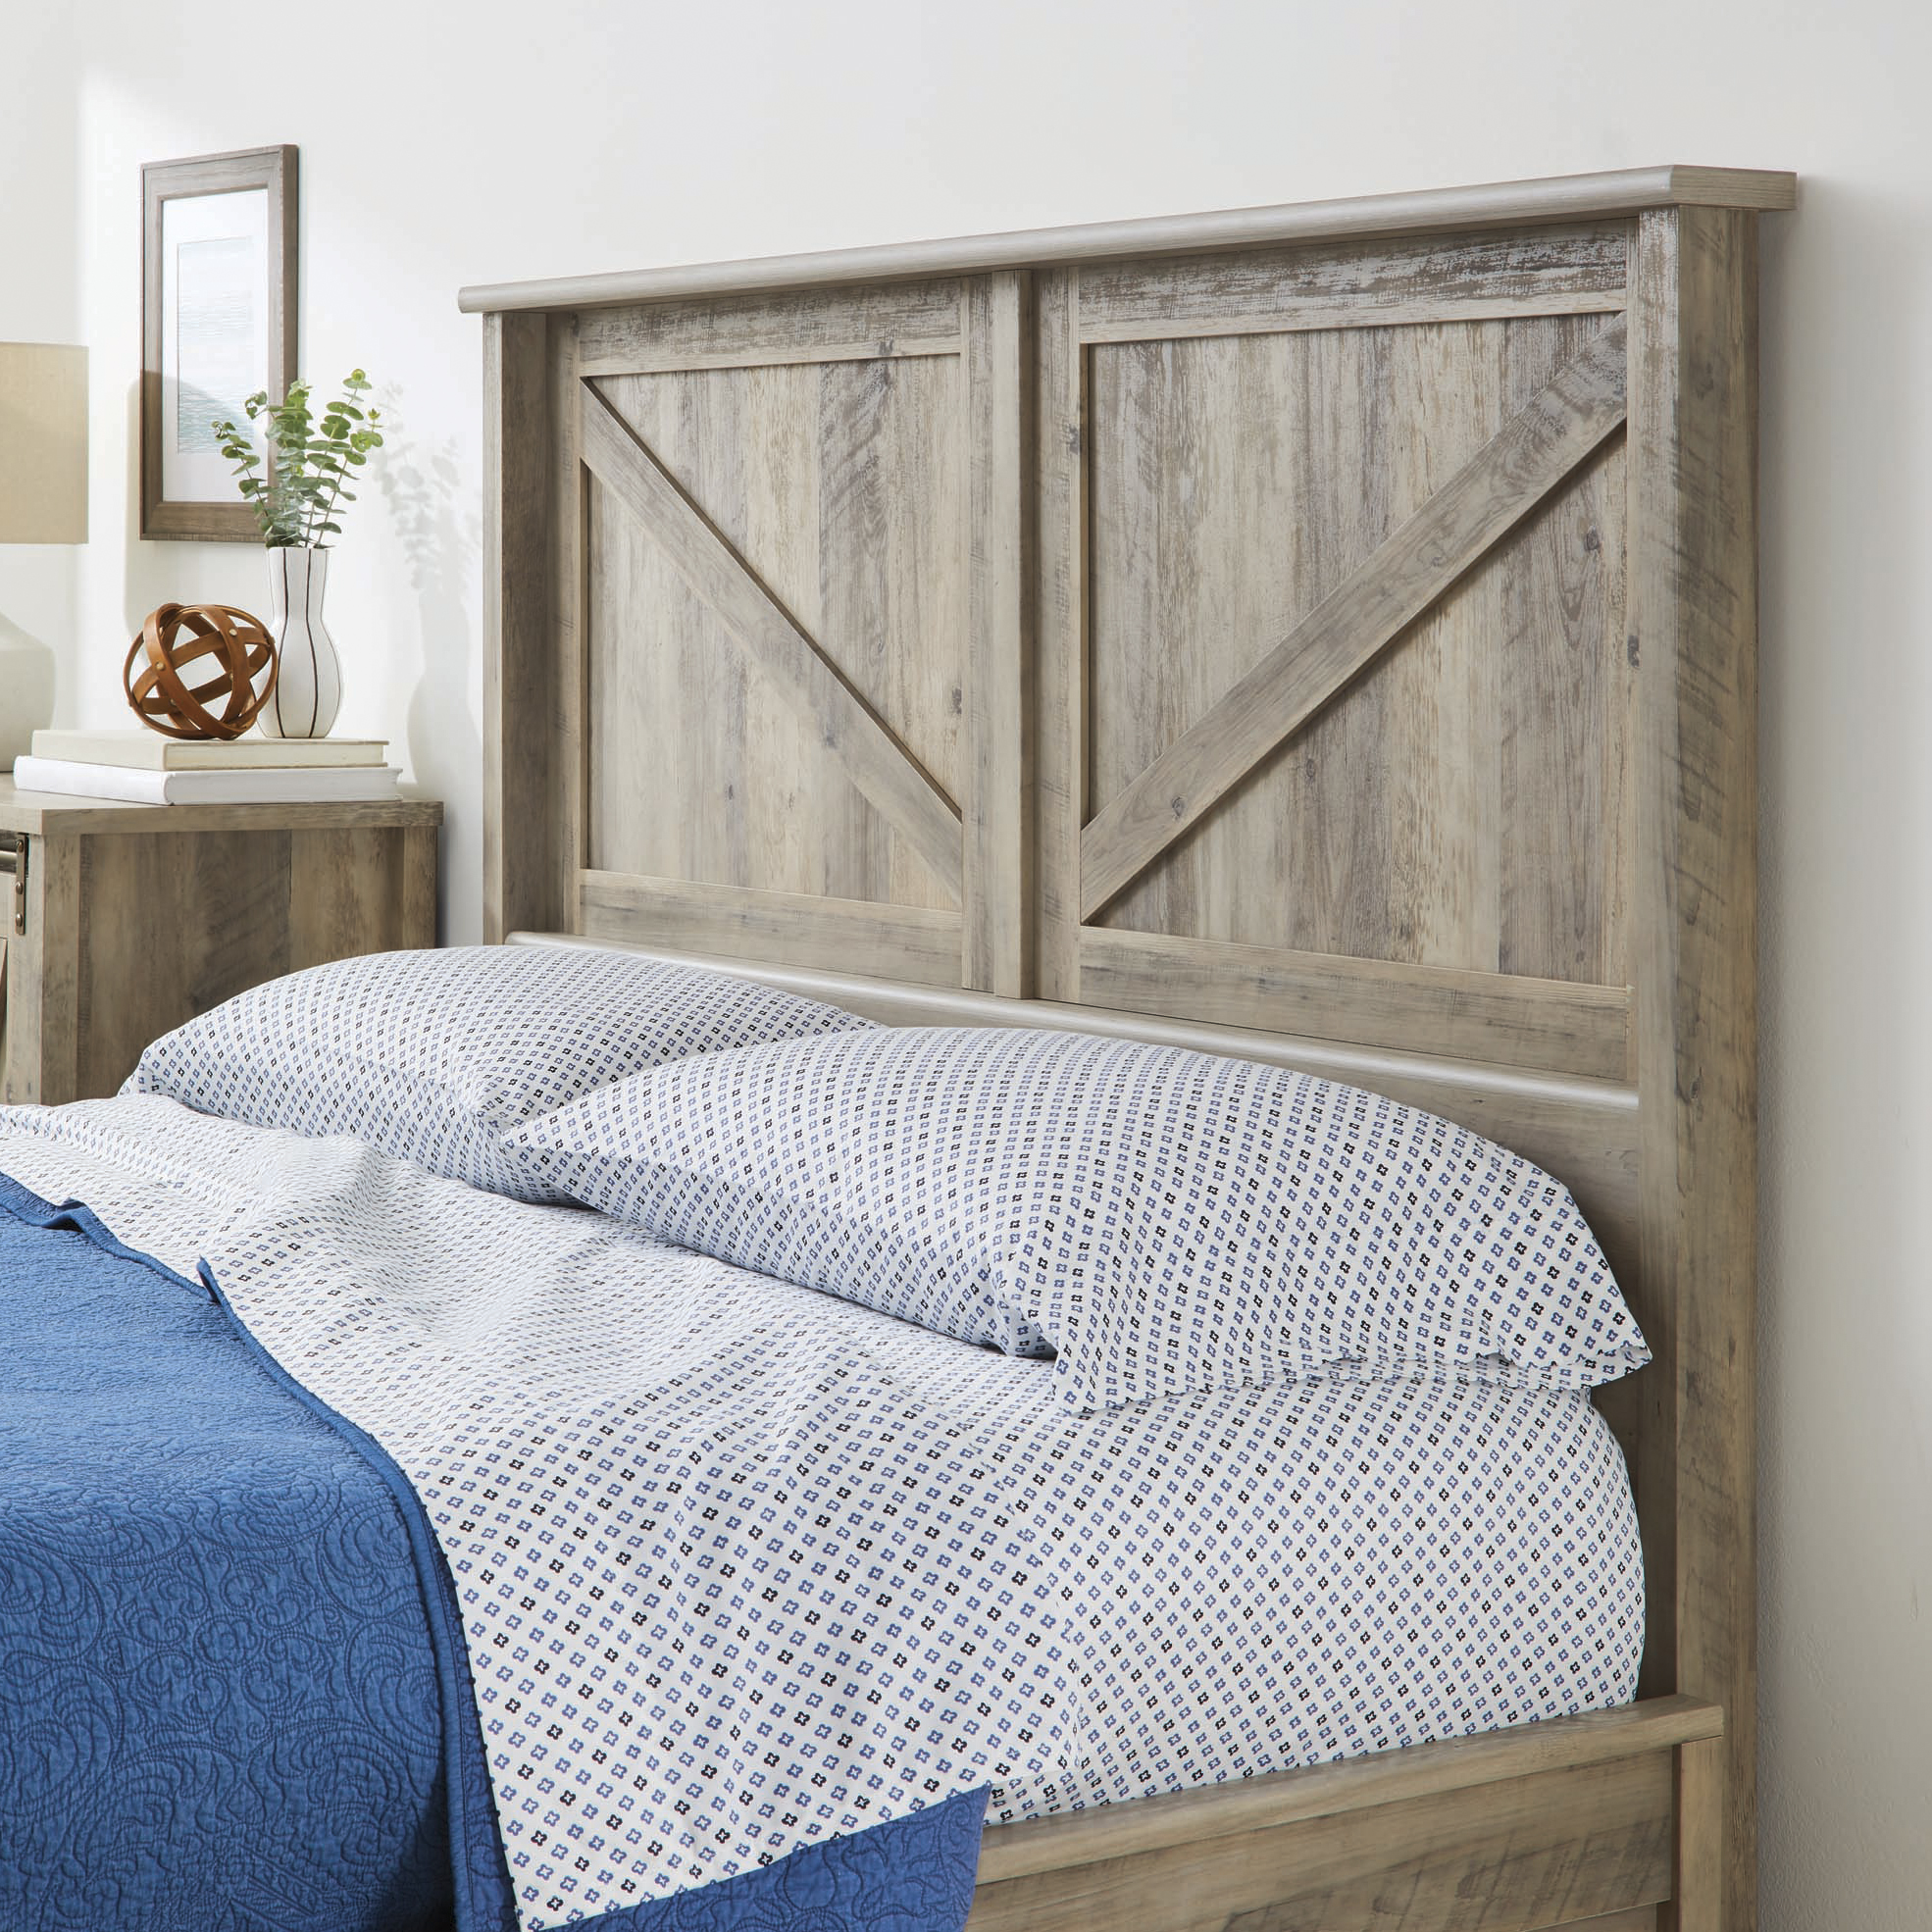 Better Homes & Gardens Modern Farmhouse Queen Headboard, Rustic Gray Finish